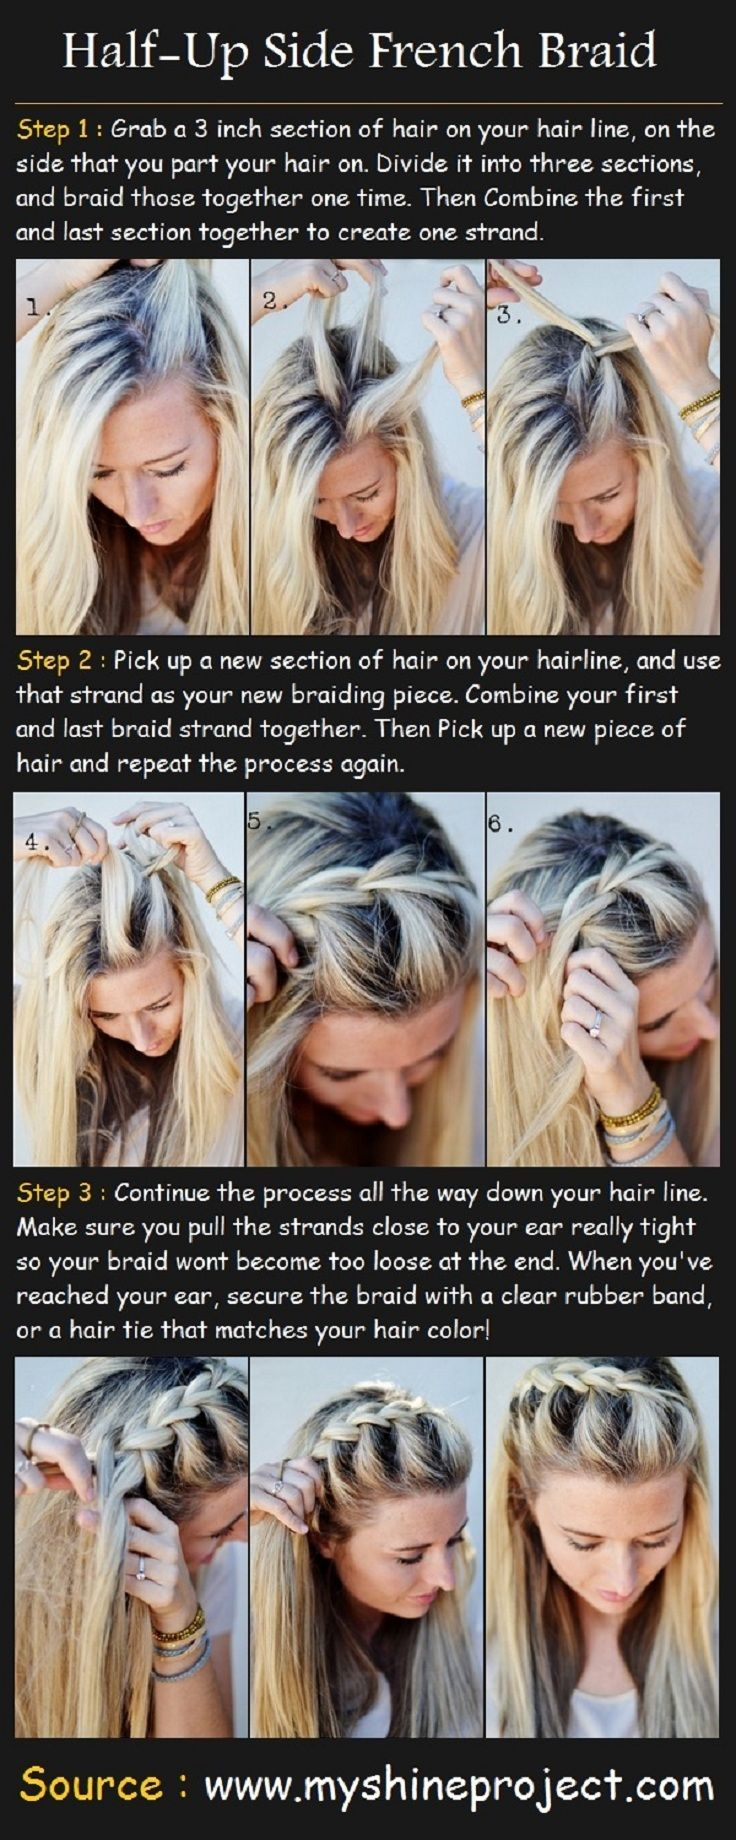 10 beautiful braid tutorials you have to check out--they are easy to do with a little practice.